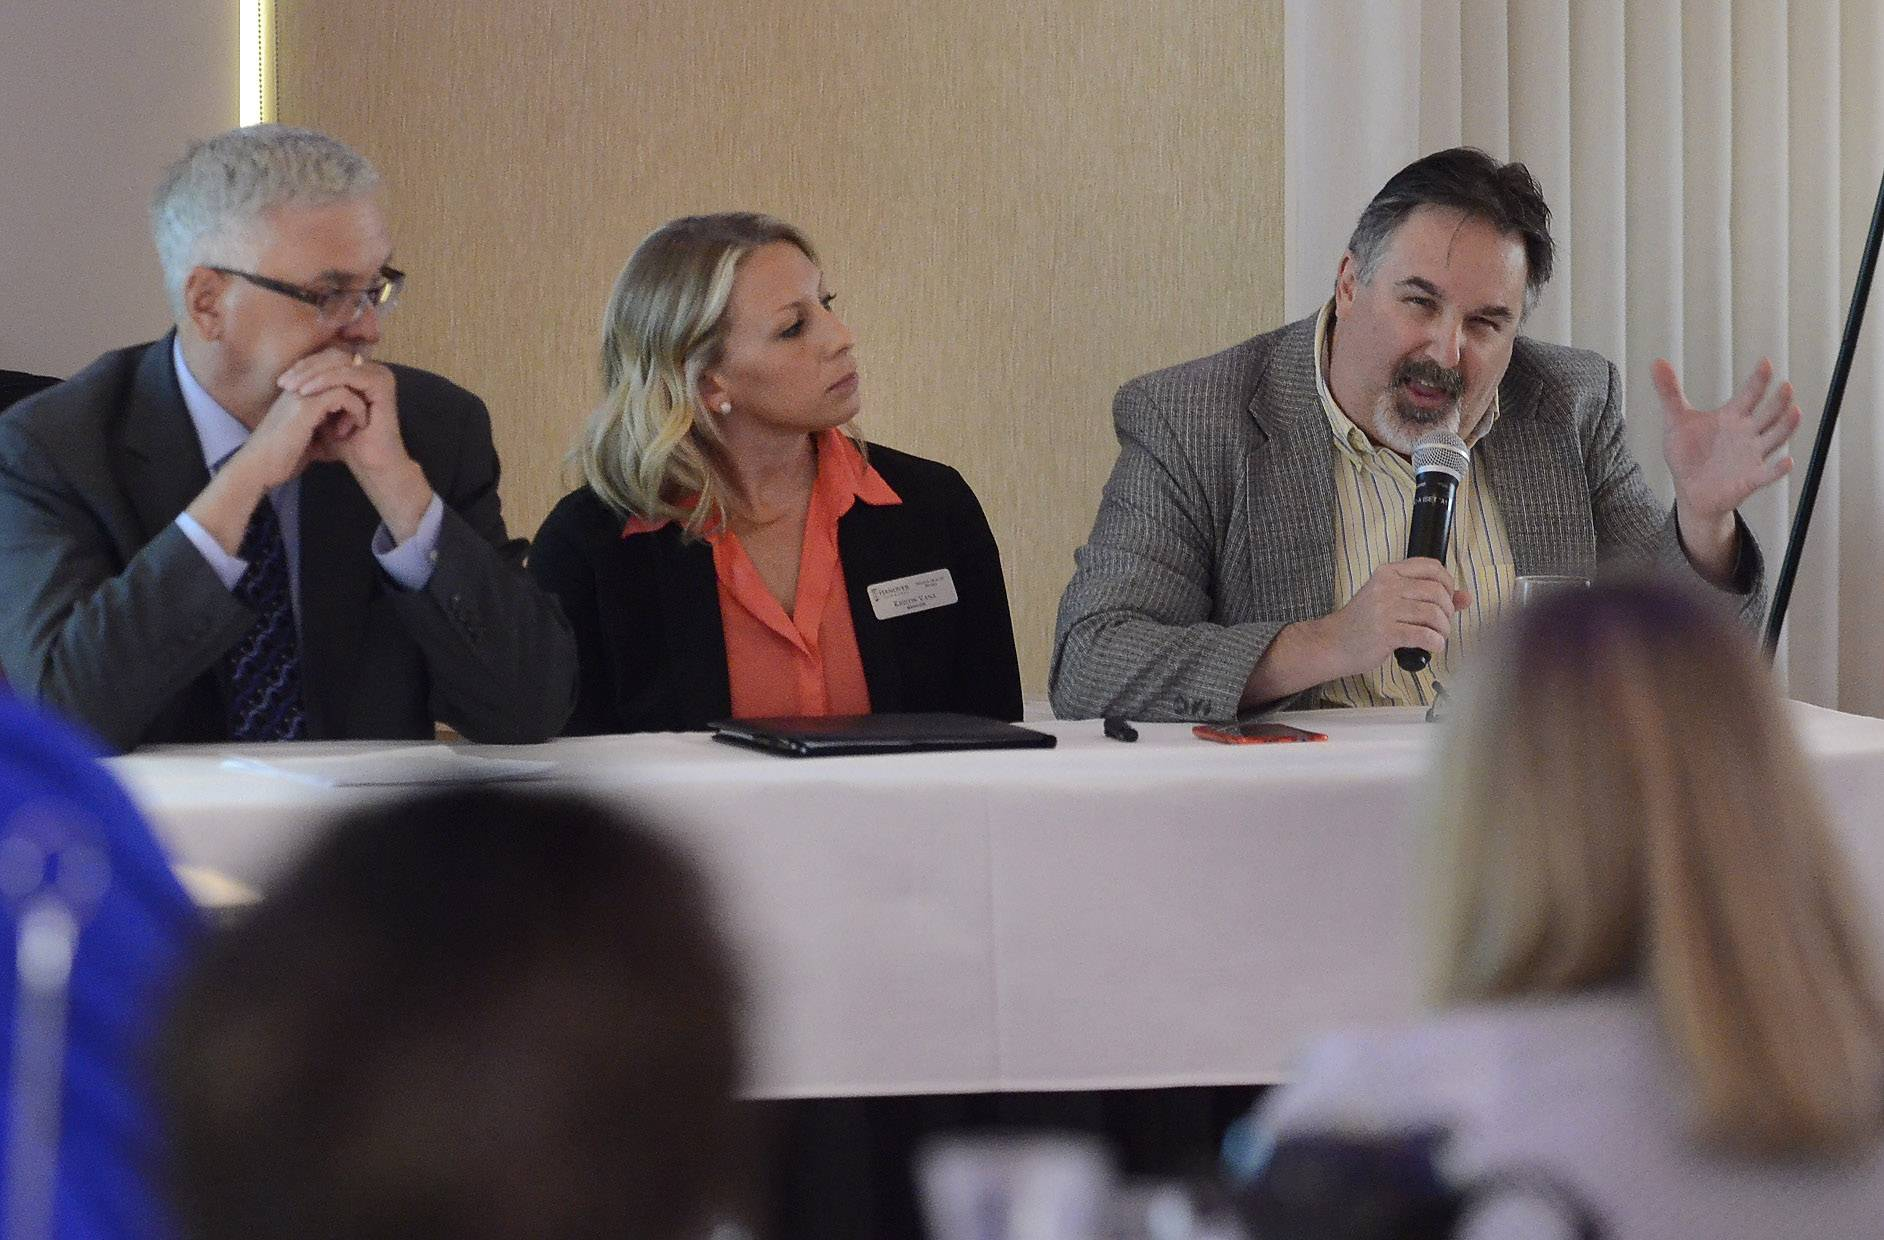 Mental health advocates, from left, Gregg Stockey, Kristin Vana and Bob Zima addressed the Schaumburg Business Association Tuesday on the challenges of their field in today's difficult funding environment, as well as how the Affordable Care Act is offering more opportunities for mental health treatment.